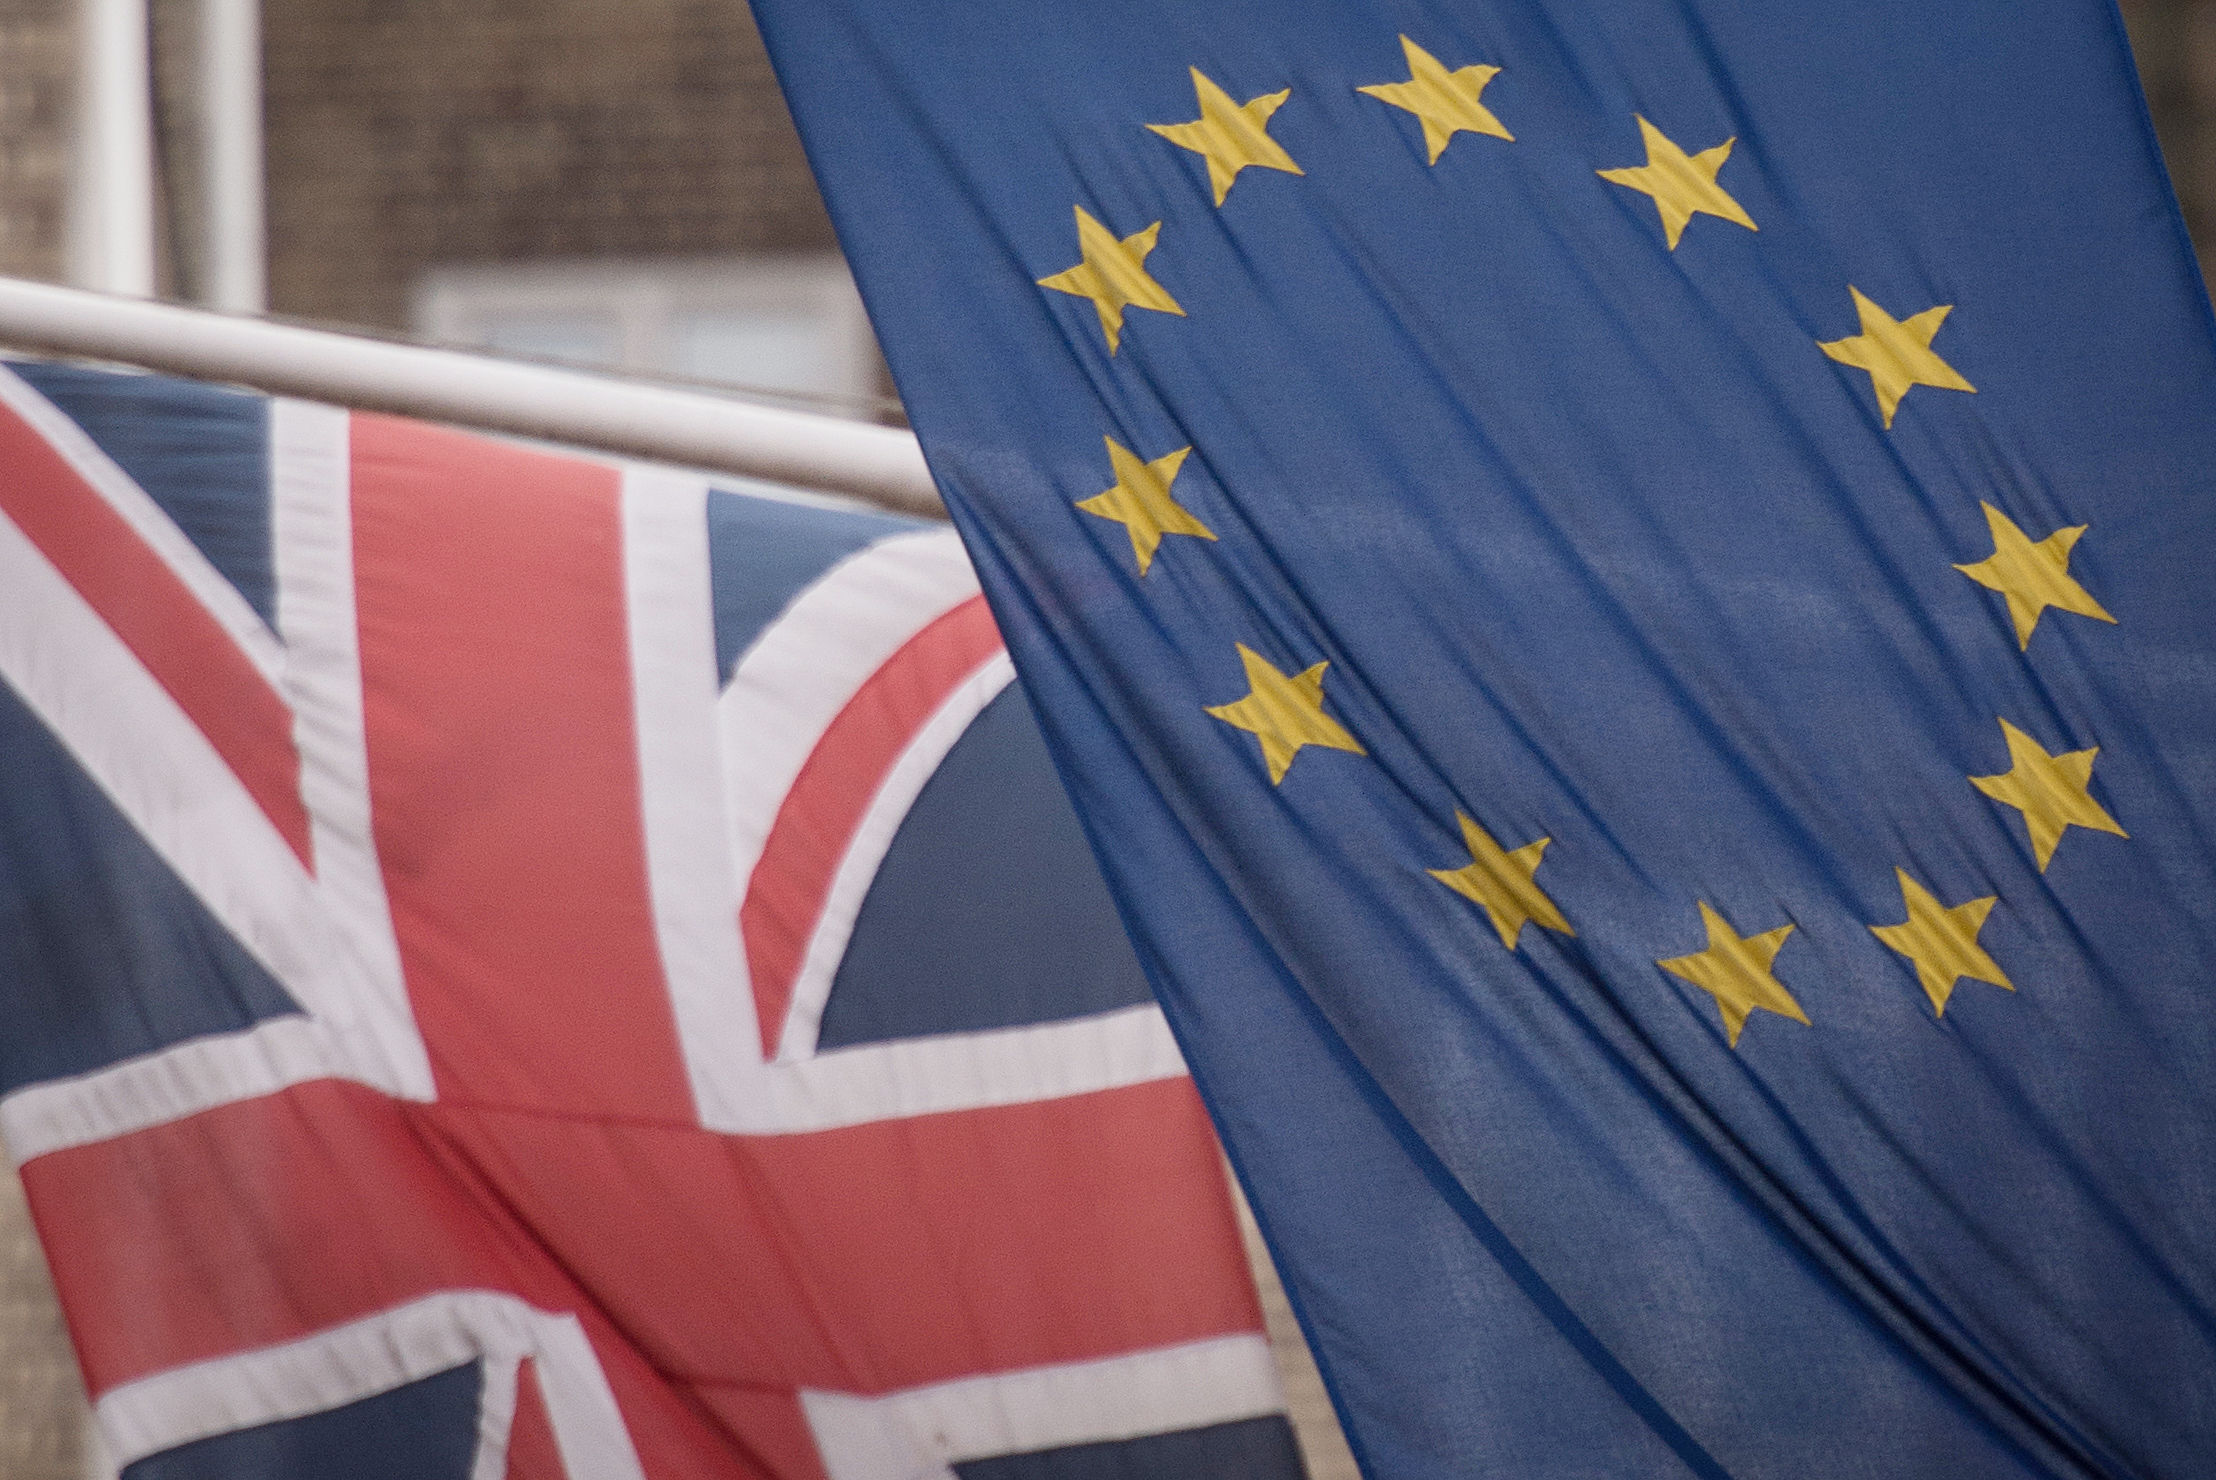 File photo dated 17/2/2016 of the EU and Union flags. Theresa May's Brexit difficulties will continue as she faces a grilling by MPs about her plans for leaving the European Union. PRESS ASSOCIATION Photo. Issue date: Wednesday July 18, 2018. The Prim